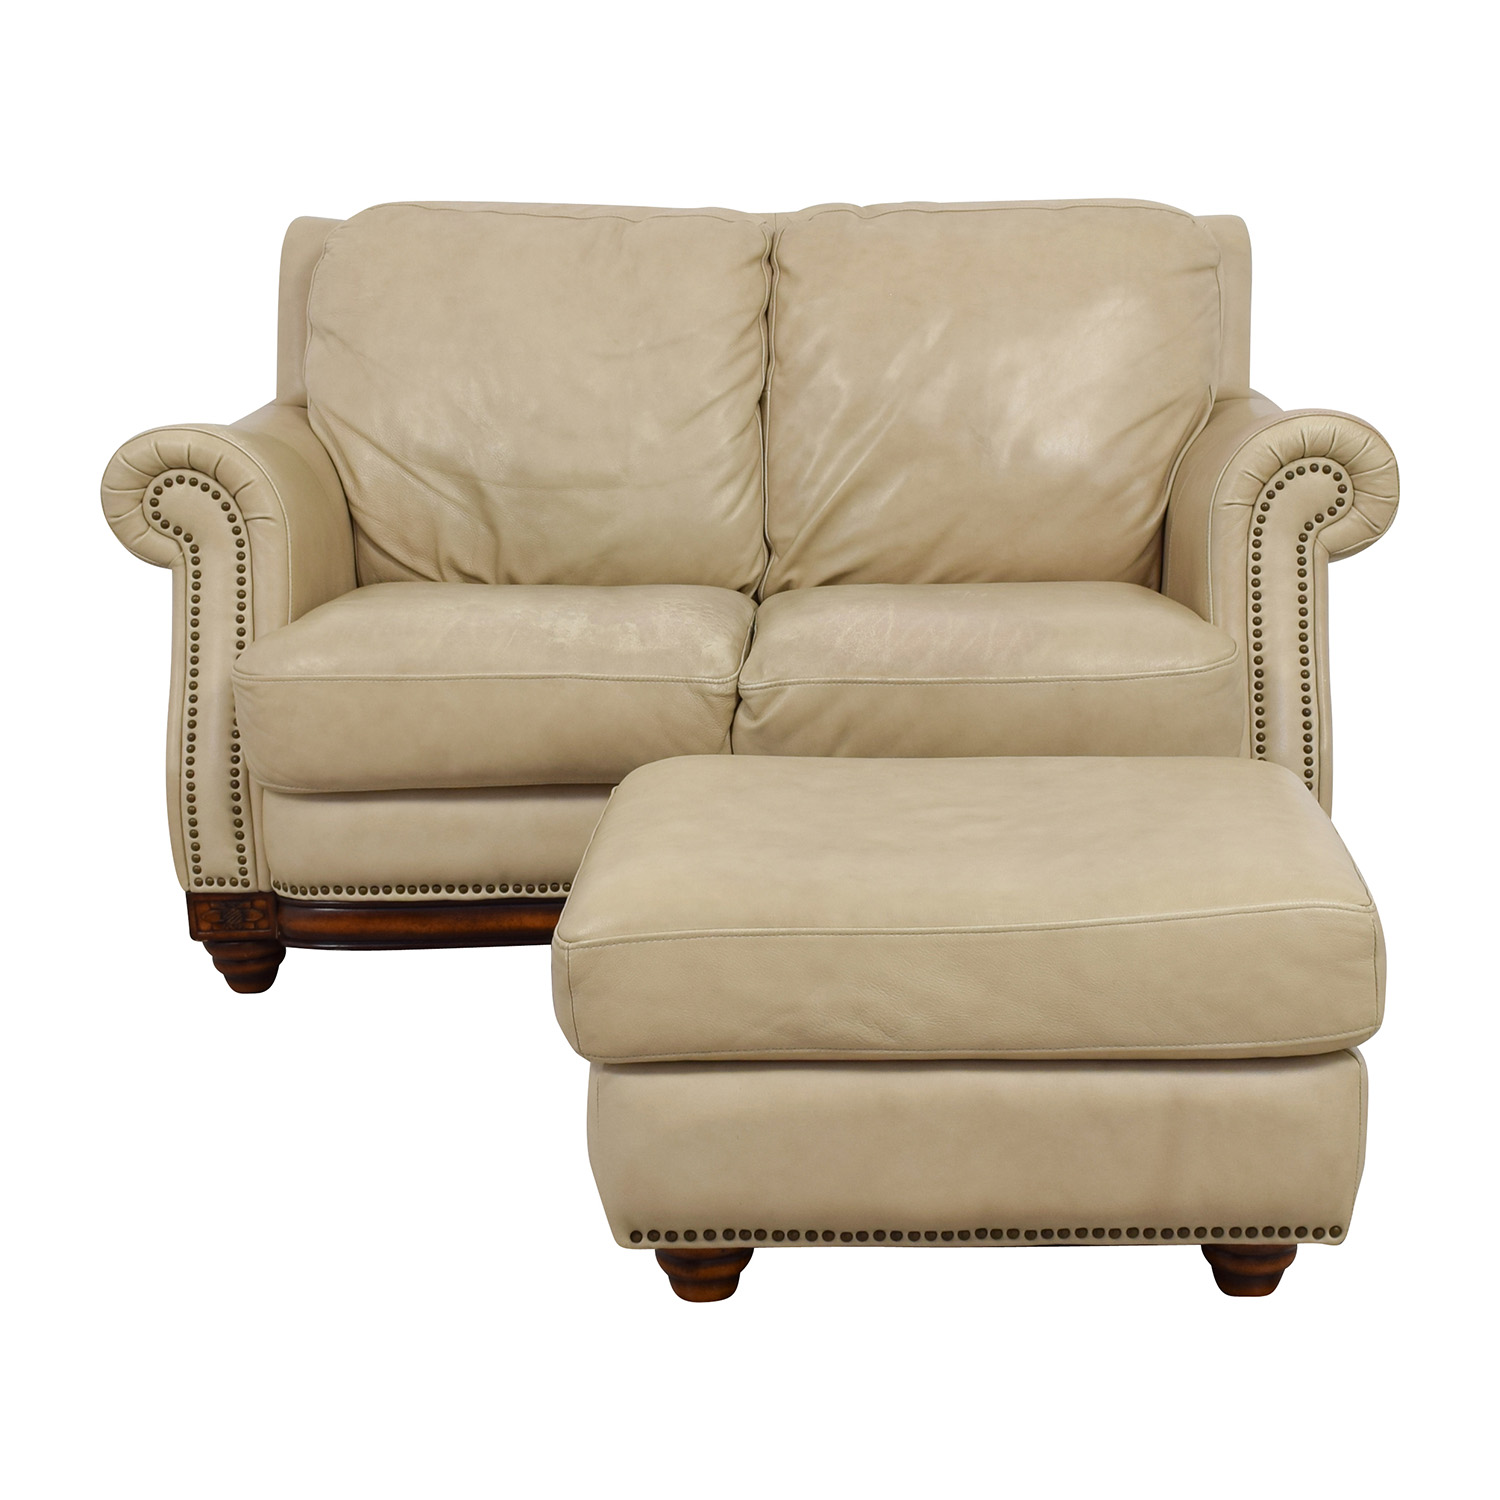 buy Raymour & Flanigan Studded Tan Leather Loveseat and Ottoman Raymour & Flanigan Sofas